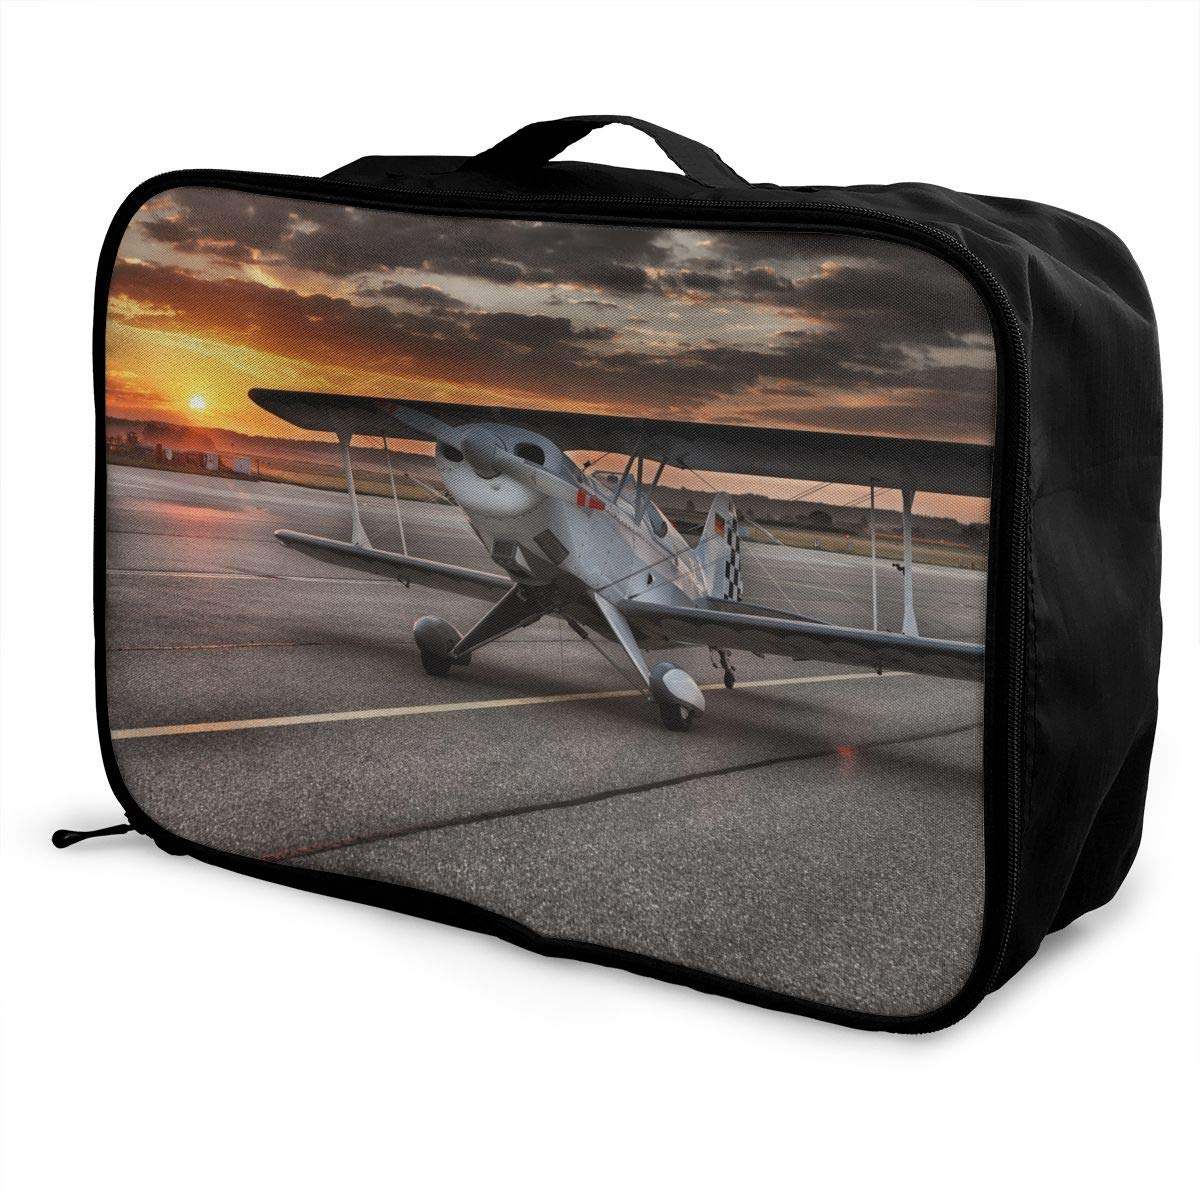 Travel Luggage Duffle Bag Lightweight Portable Handbag Small Plane Pattern Large Capacity Waterproof Foldable Storage Tote